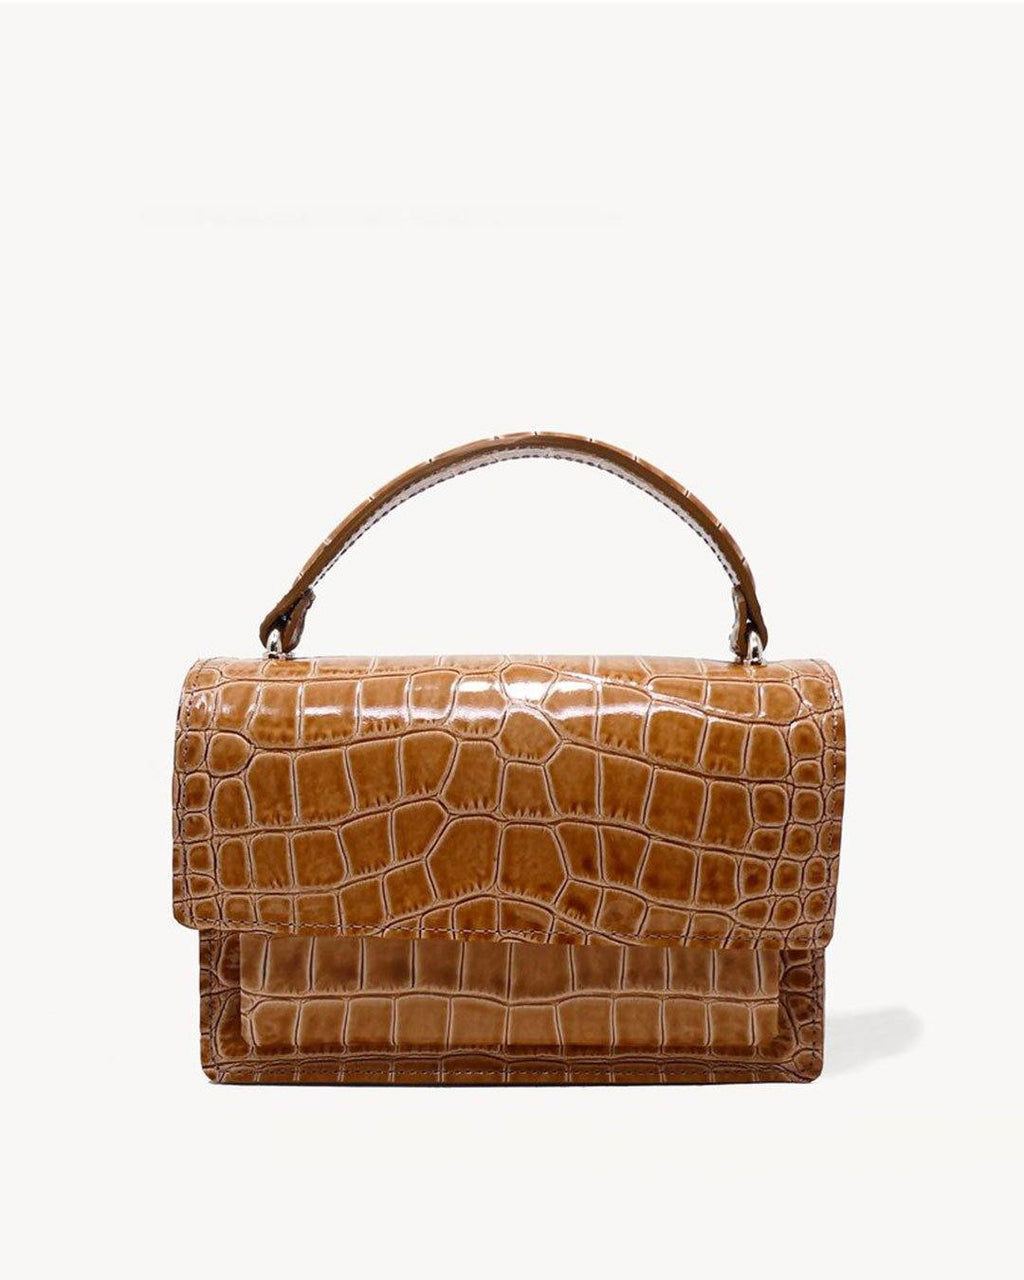 CHELSEY COMFORT | Lady Bag - Toffee